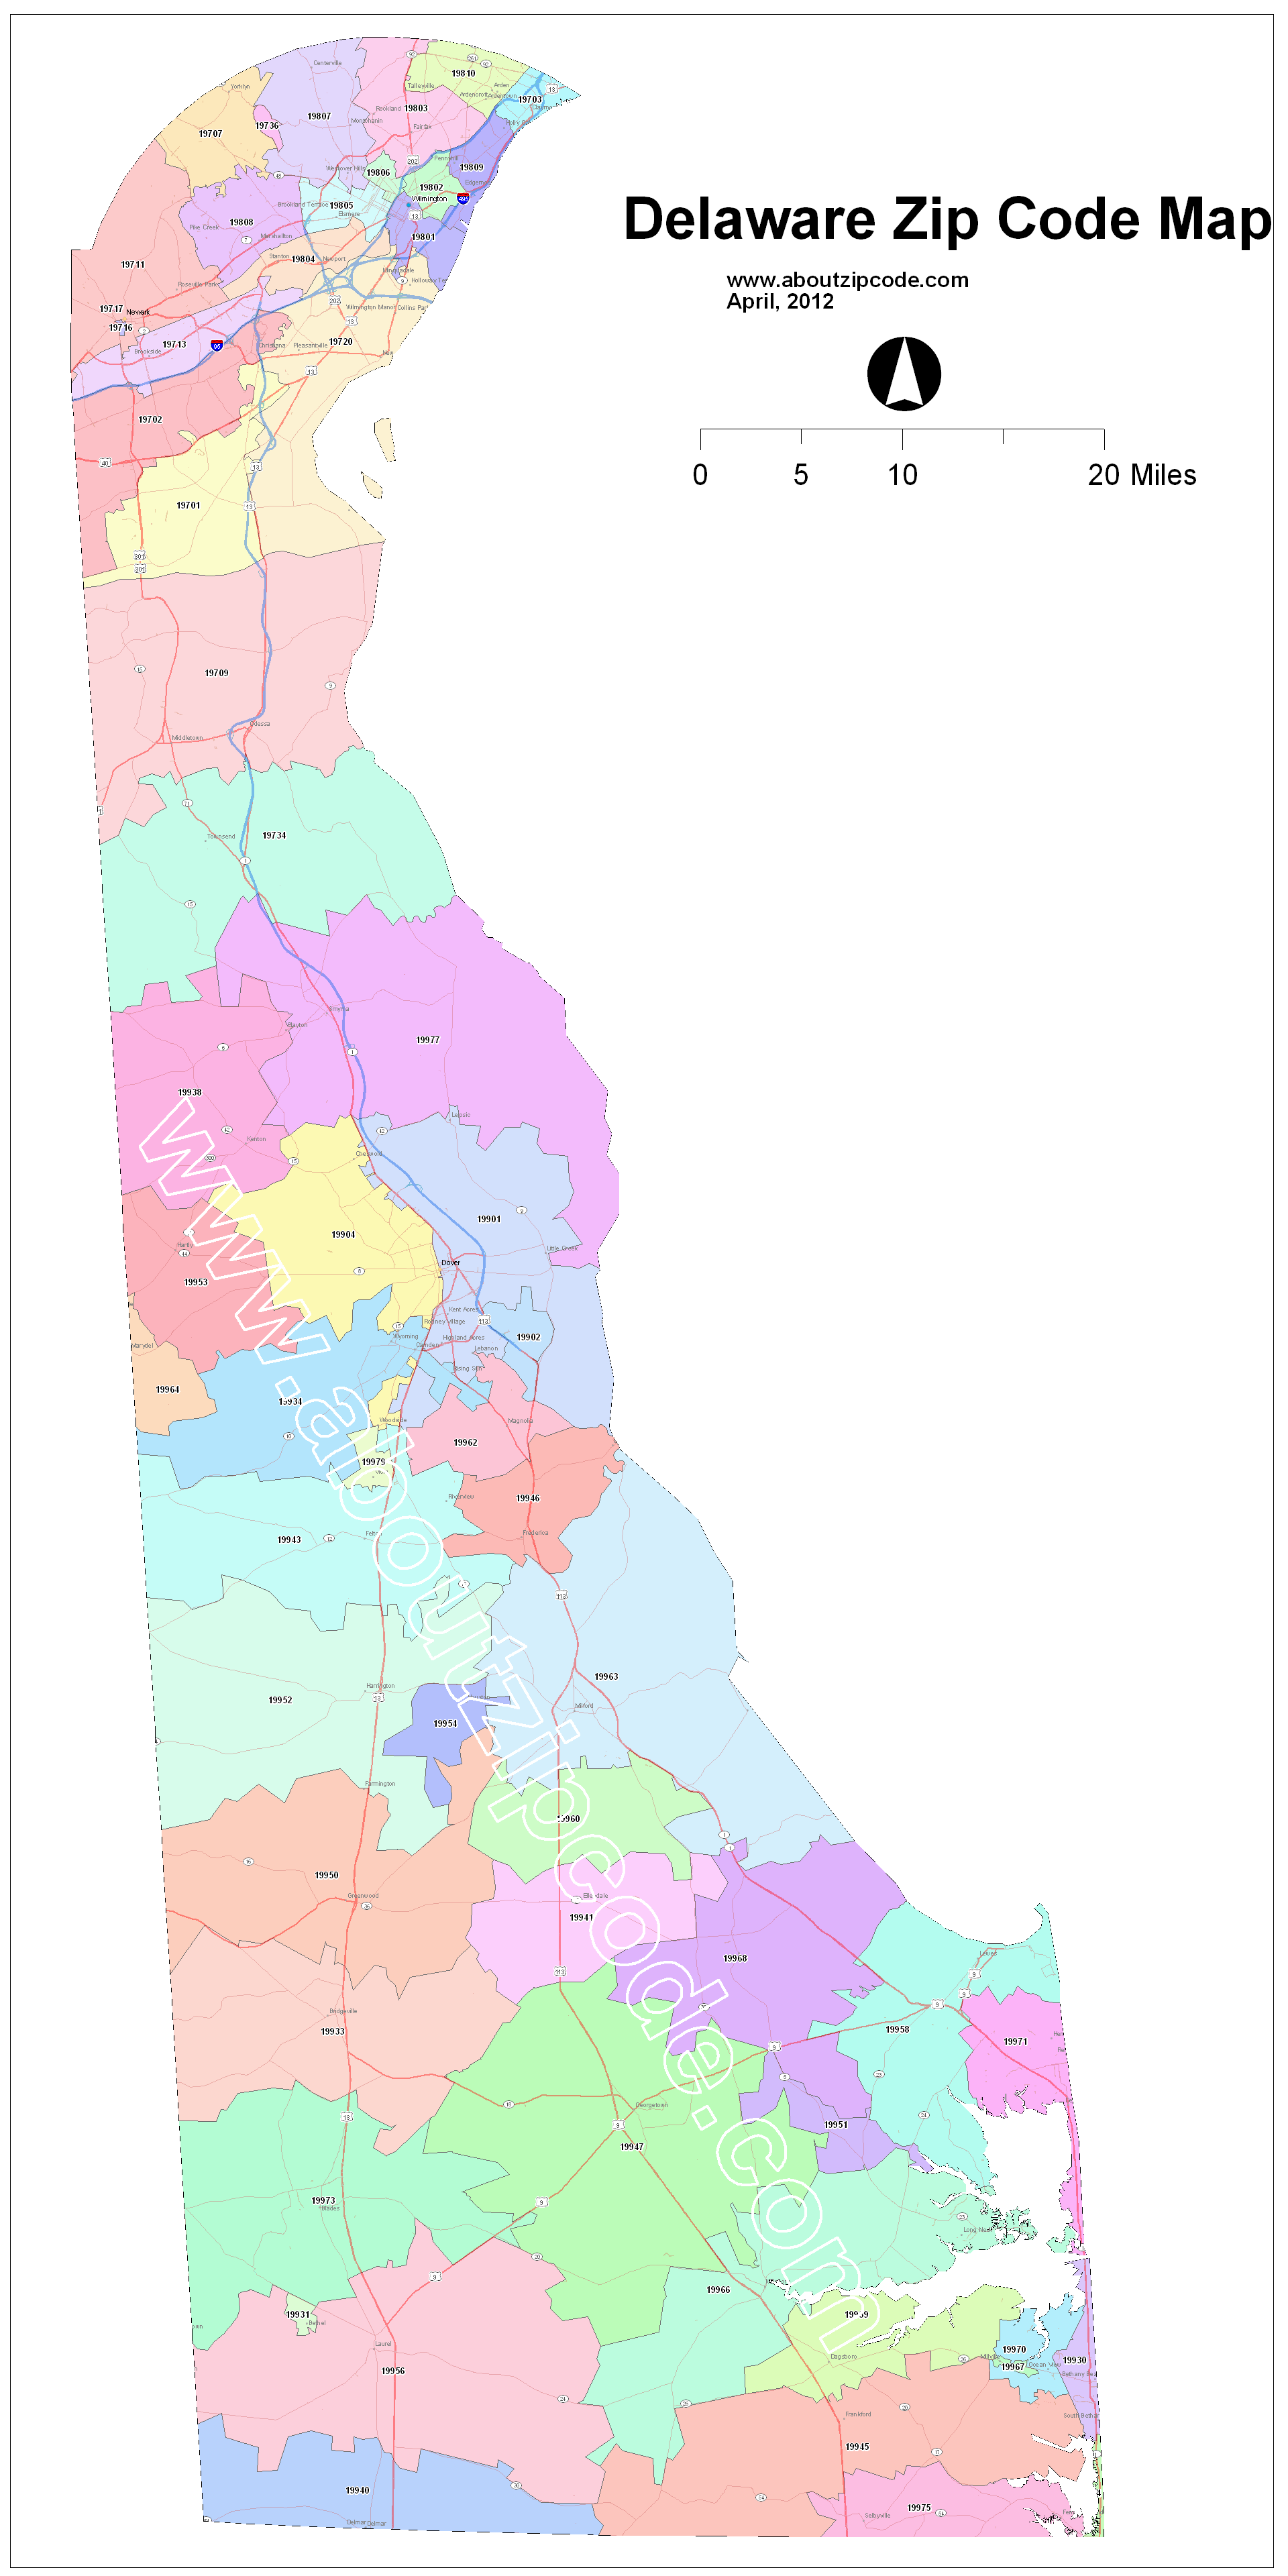 Delaware Zip Code Maps Free Delaware Zip Code Maps - New hampshire zip code map